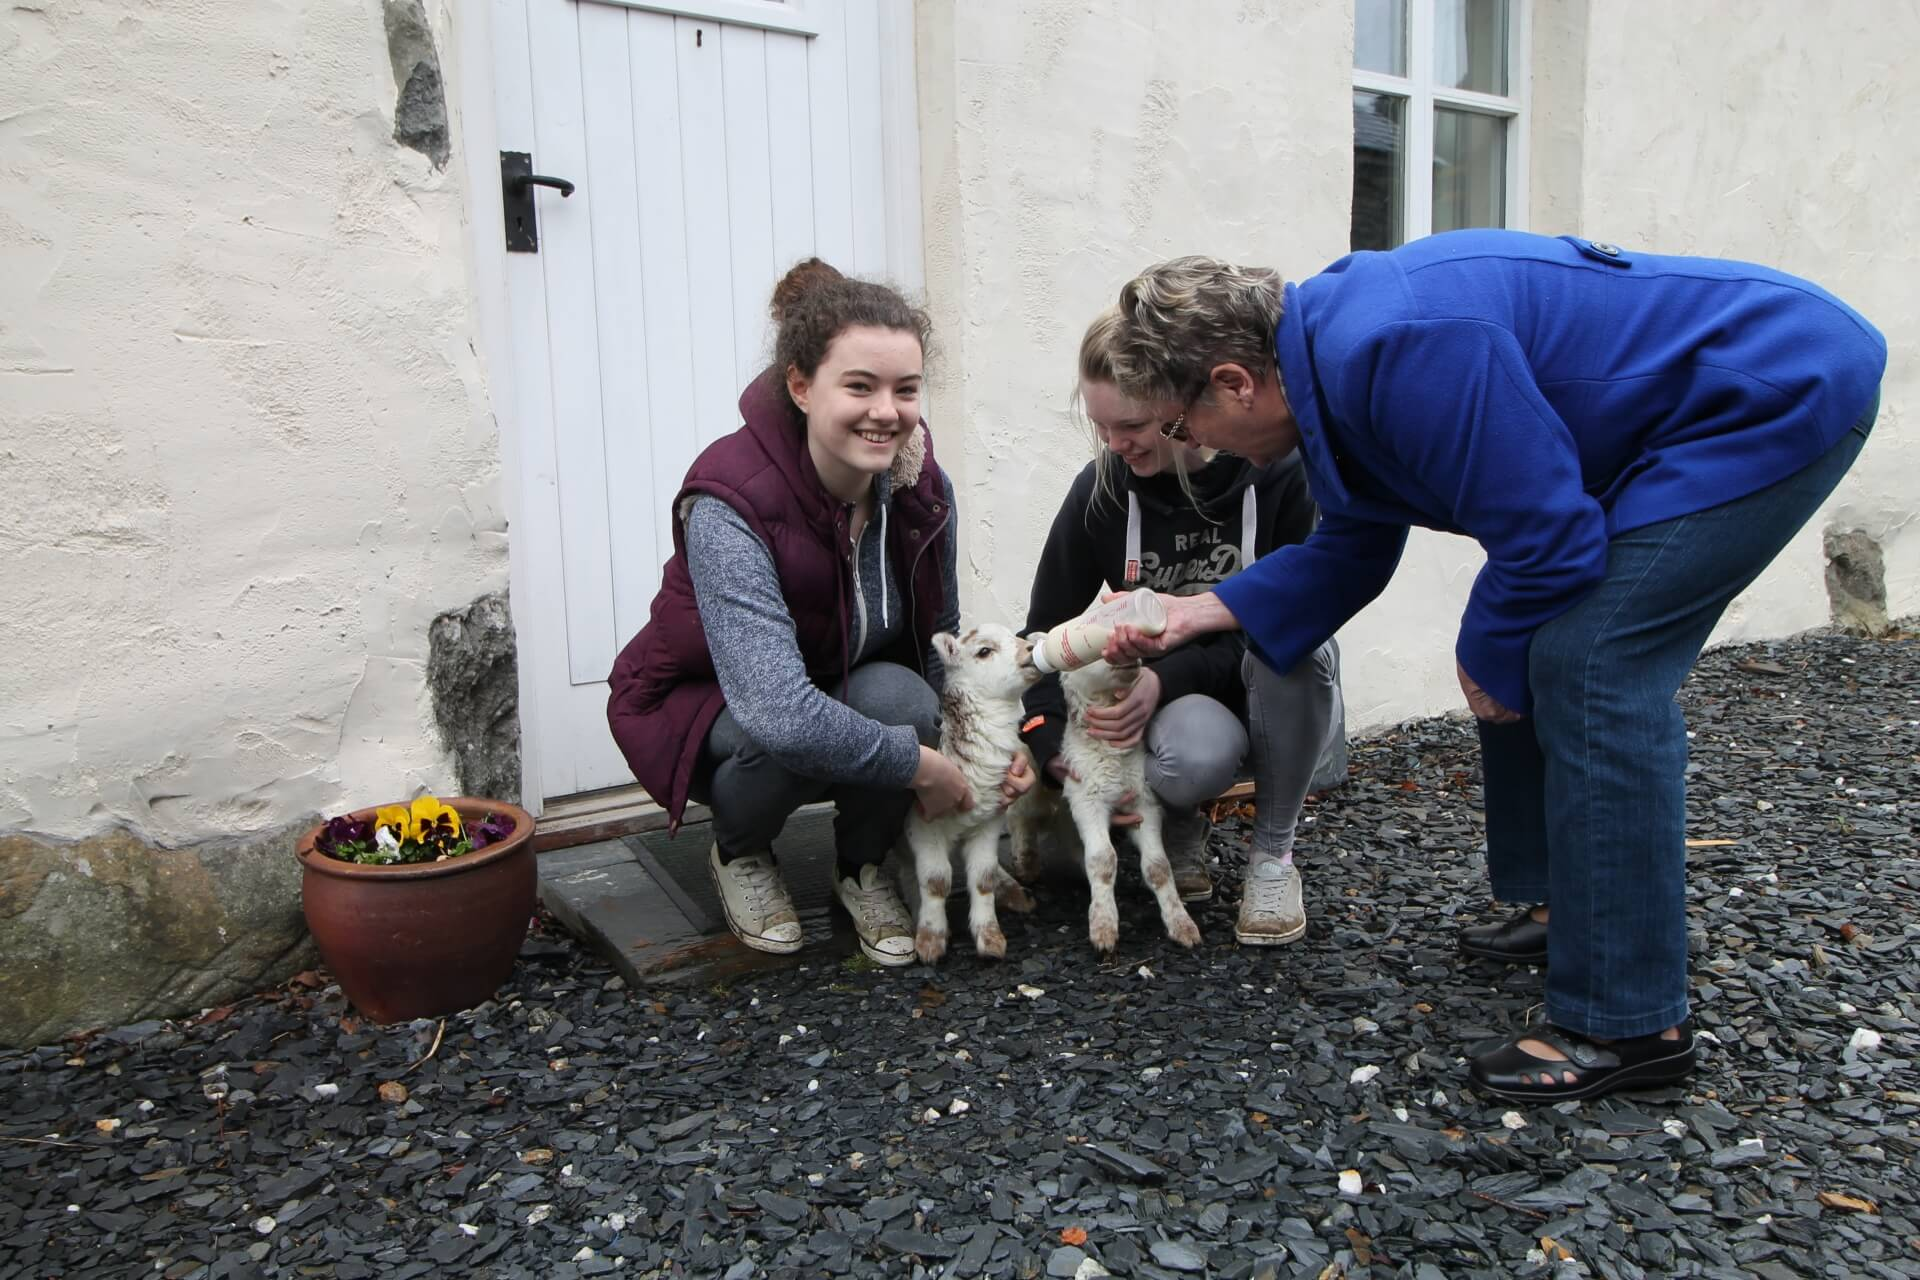 Spring Holiday in Snowdonia with lambs